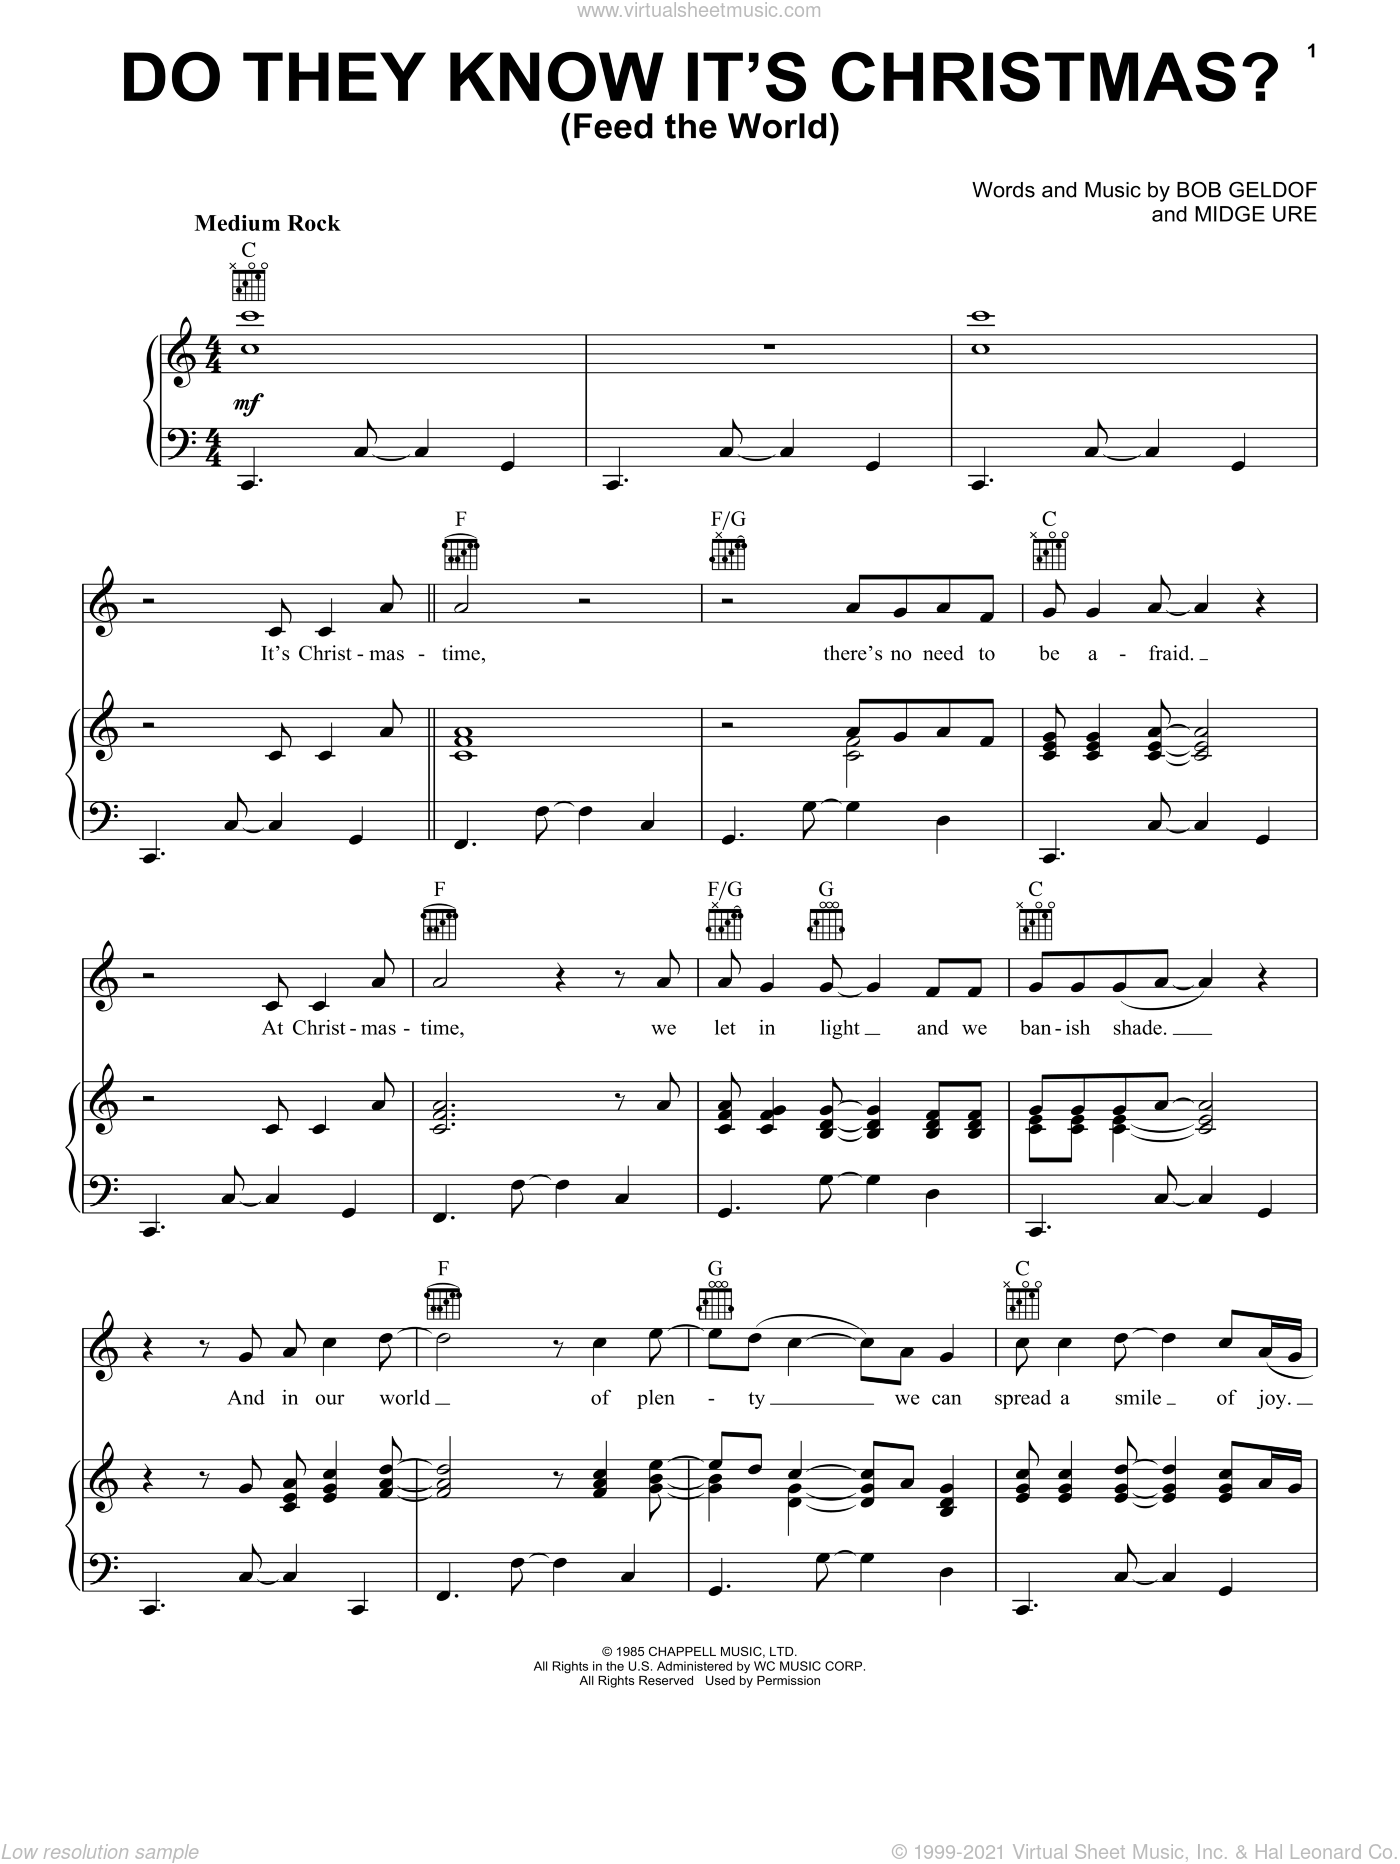 Do They Know It's Christmas? sheet music for voice, piano or guitar by Midge Ure